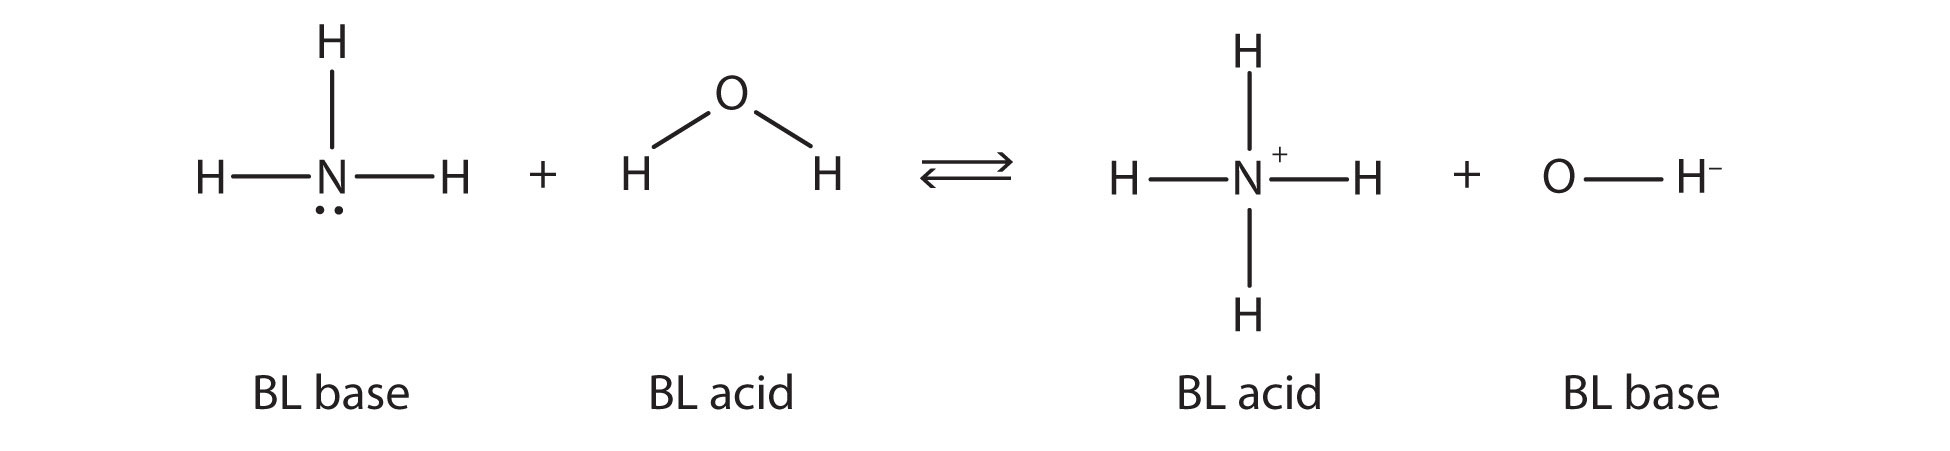 worksheet Bronsted Lowry Acids And Bases Worksheet Answers lowry acids and bases